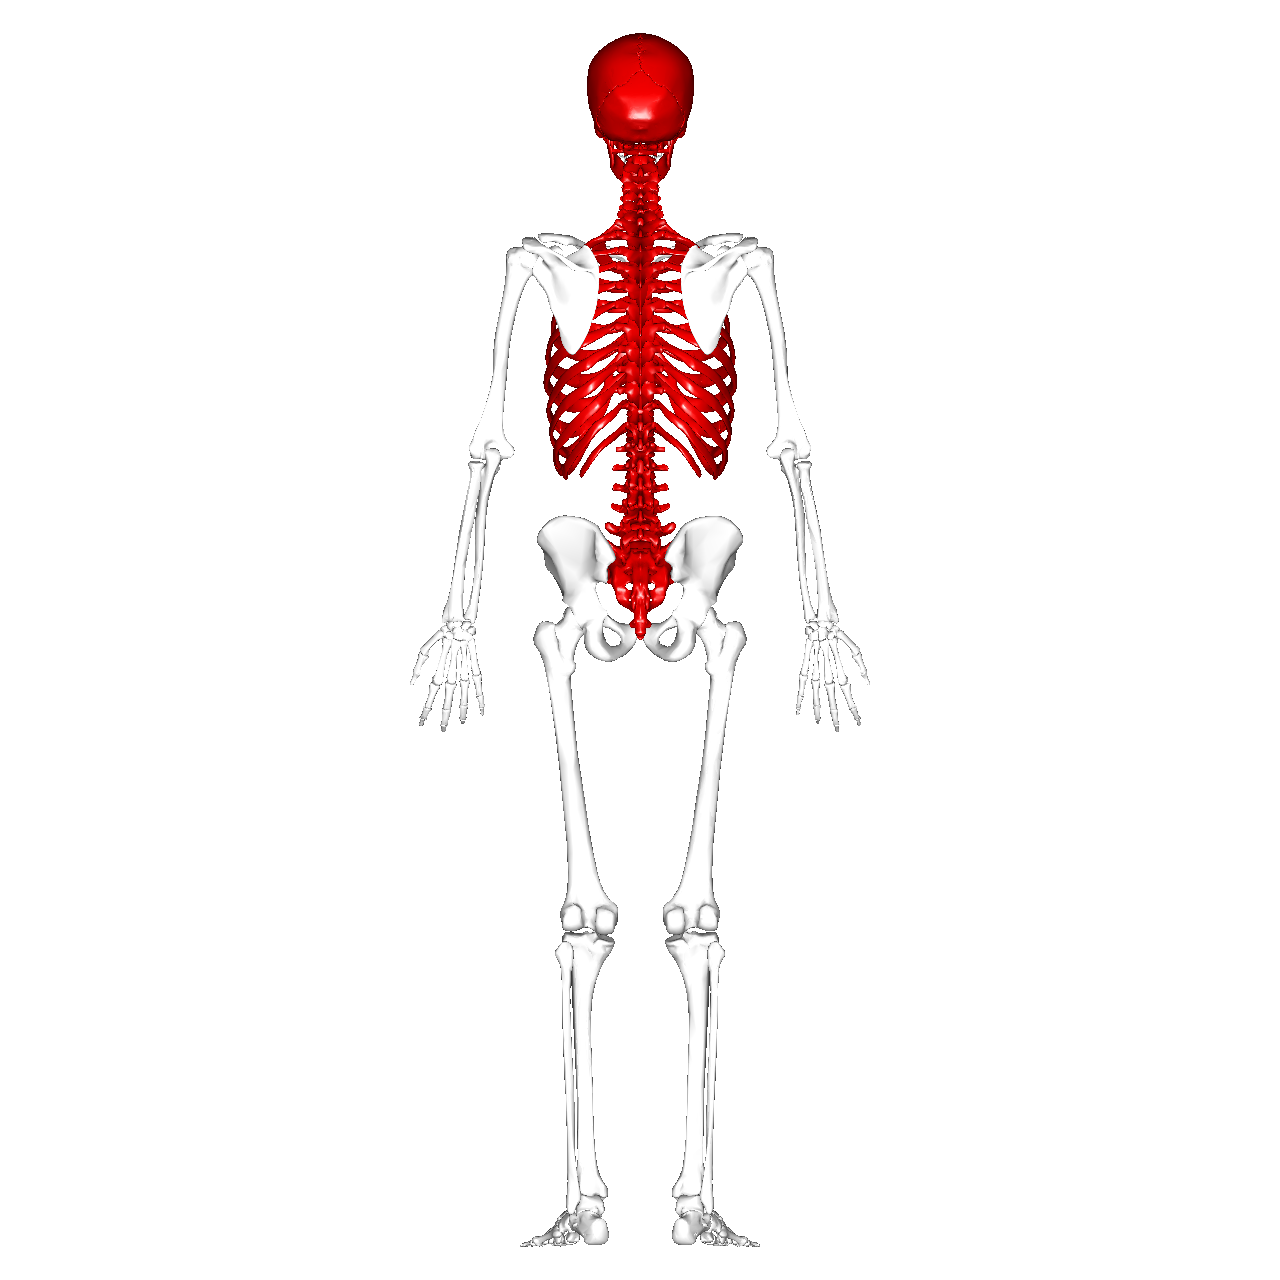 File:Axial skeleton - posterior view.png - Wikimedia Commons